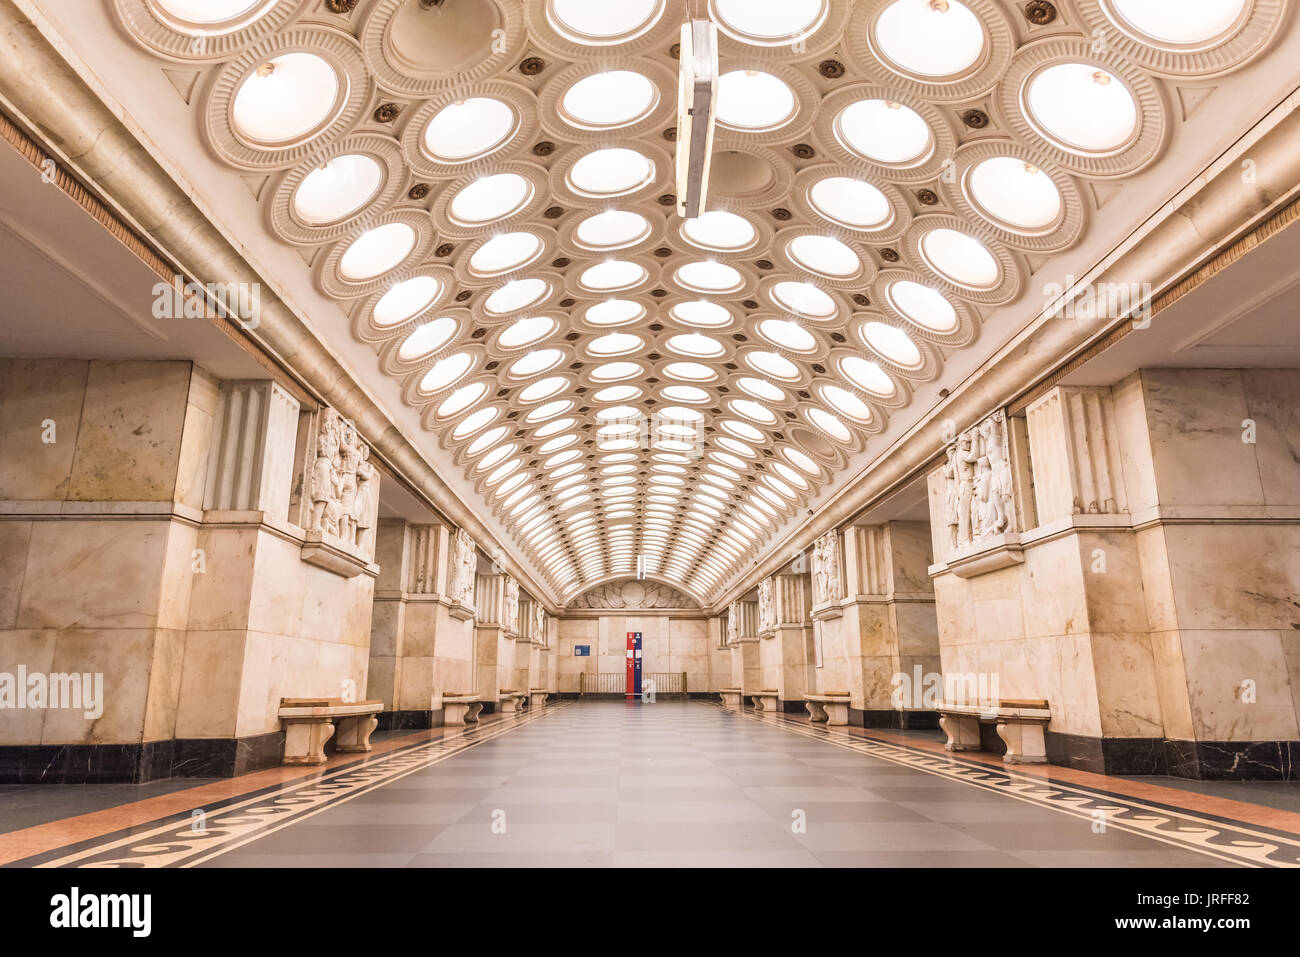 Moscow, Russia – July 09, 2017: Interior of Elektrozavodskaya Metro Station in Moscow, Russia. Elektrozavodskaya Stock Photo